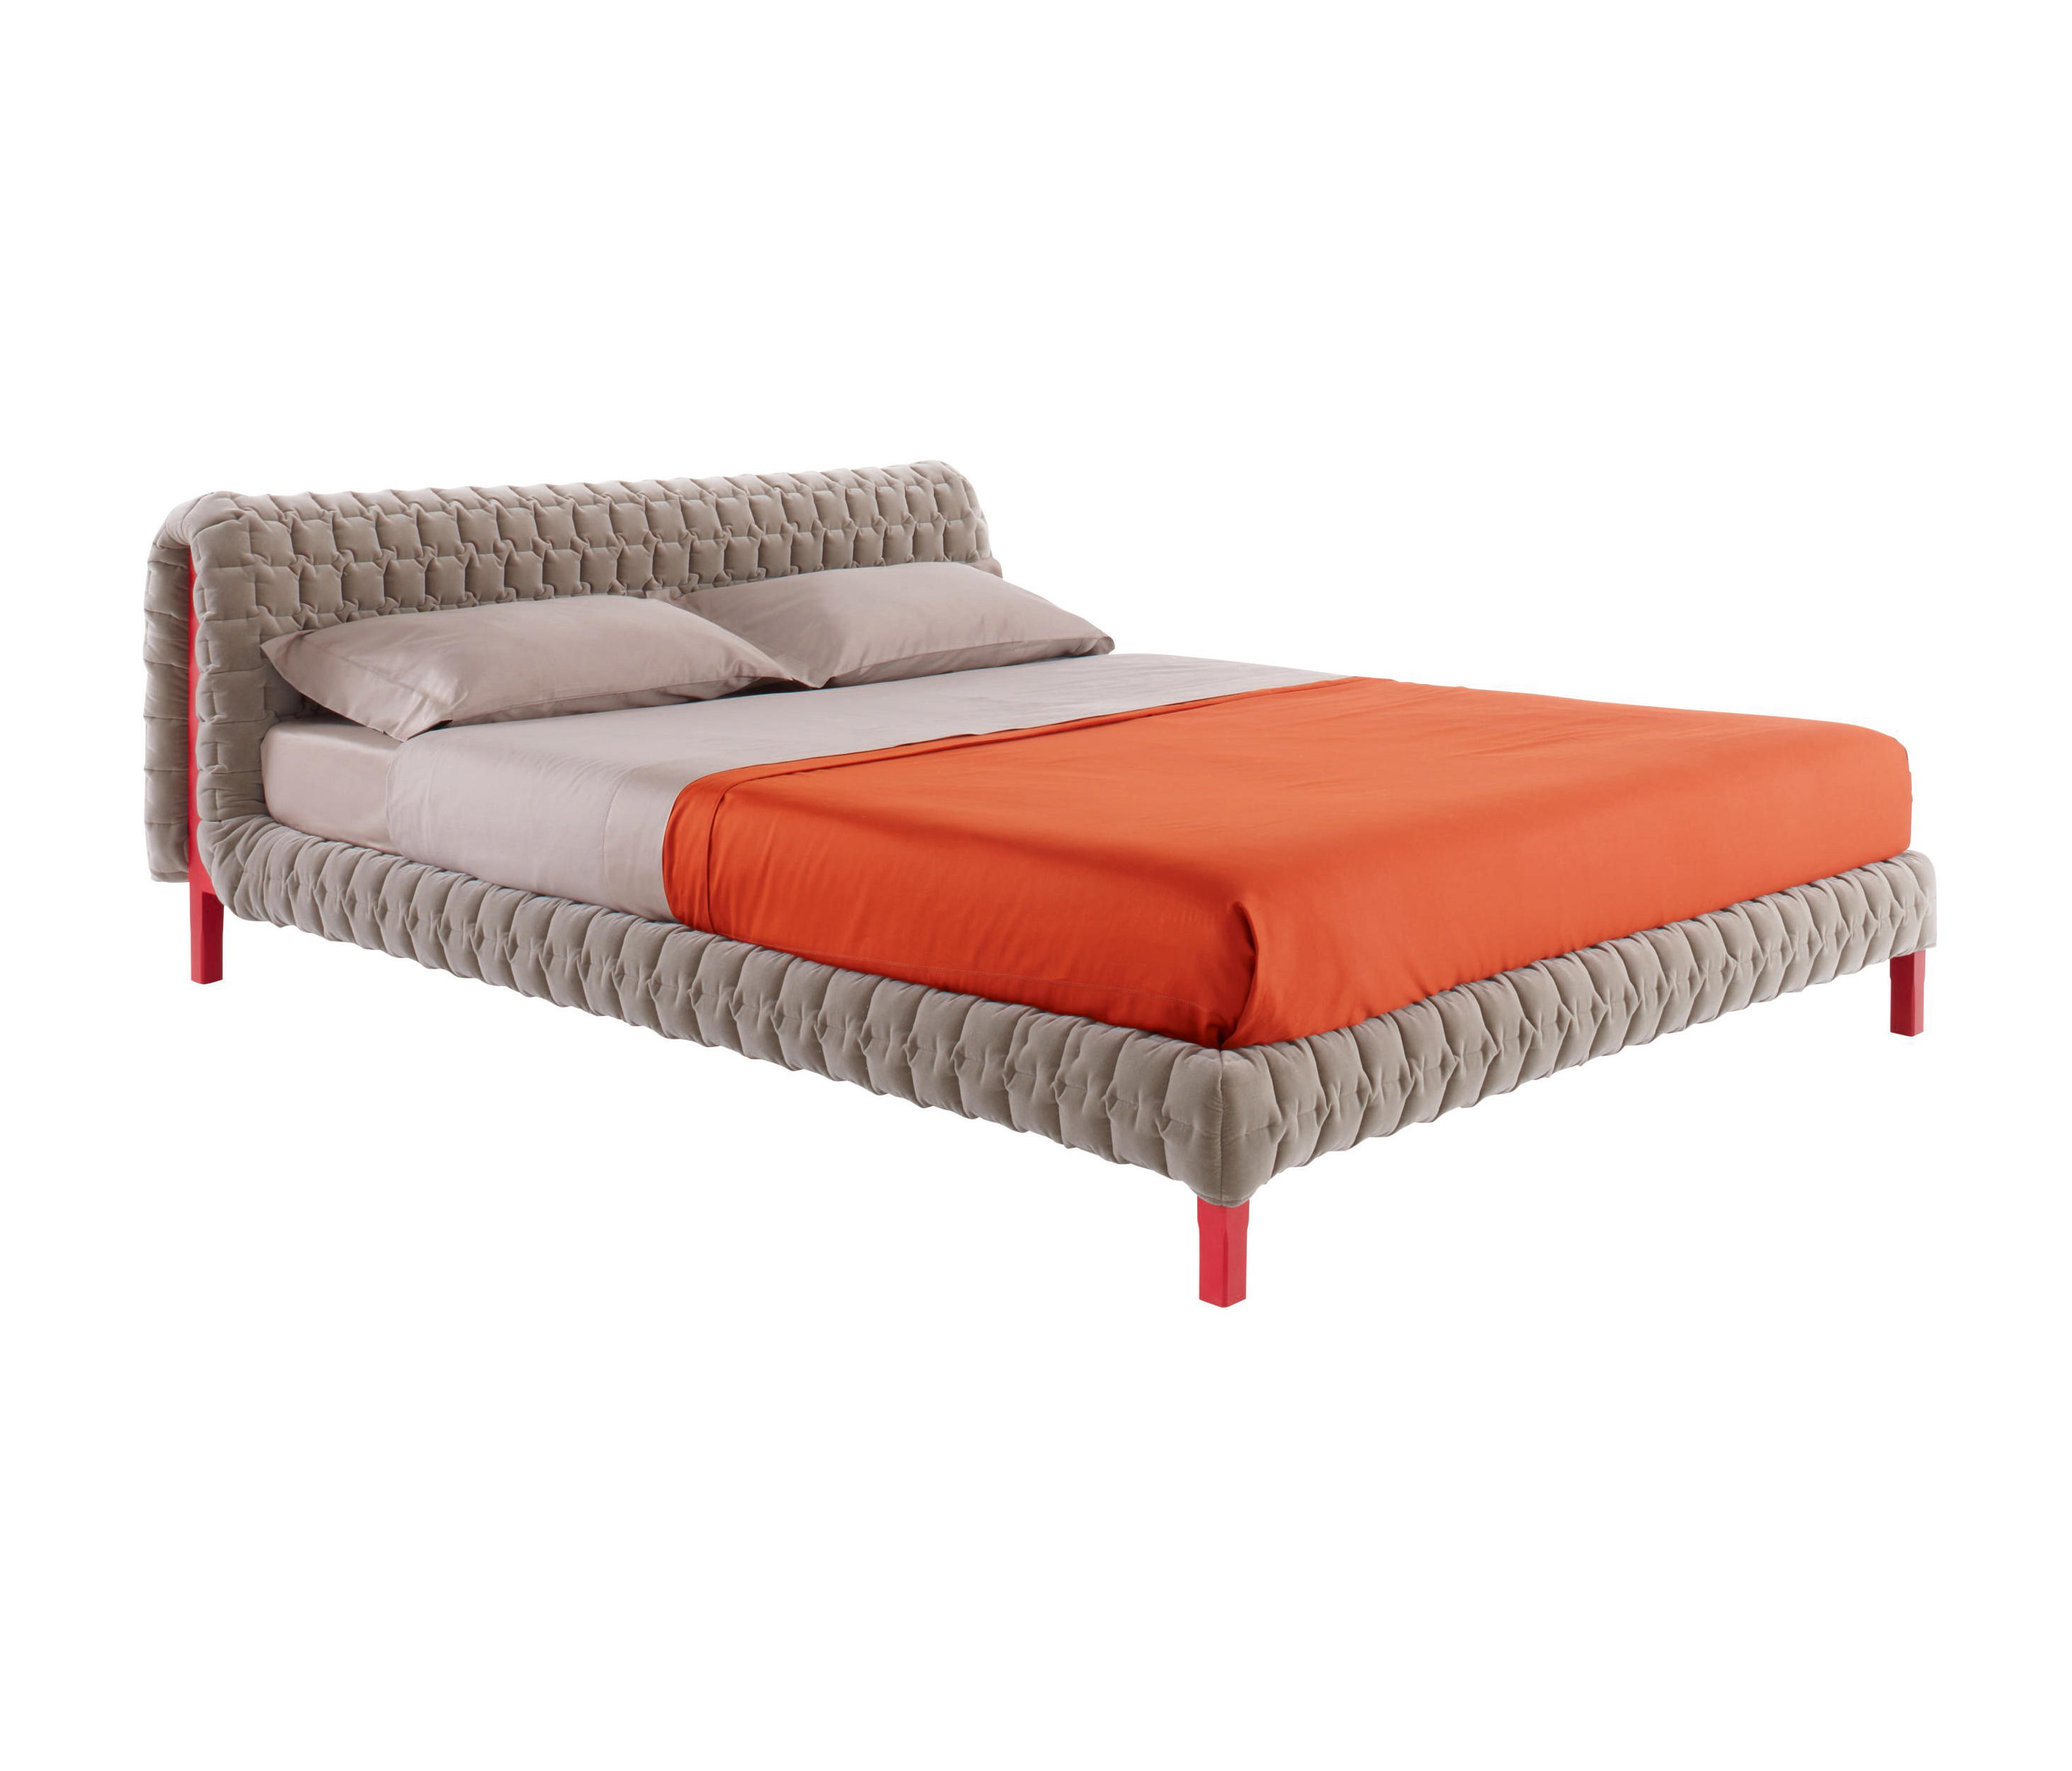 140 X 200 RuchÉ Bed 140 X 200 Low Headboard Low Feet Beds From Ligne